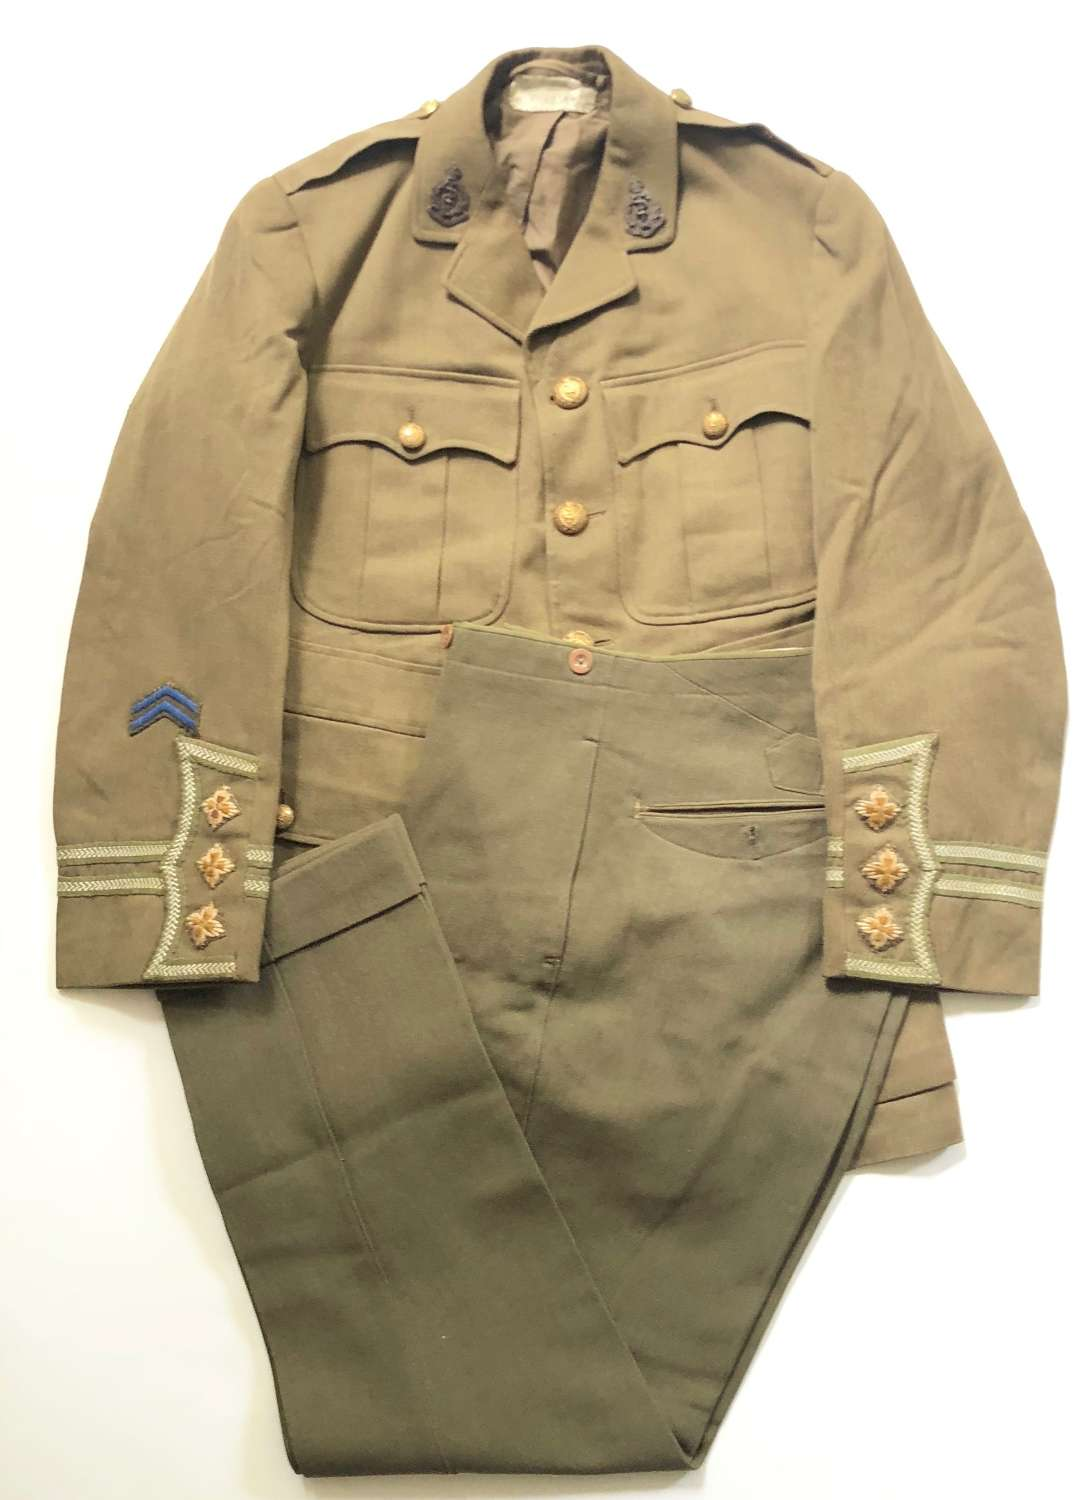 WW1 RAMC Attributed Officer's Cuff Rank Tunic & Trousers.